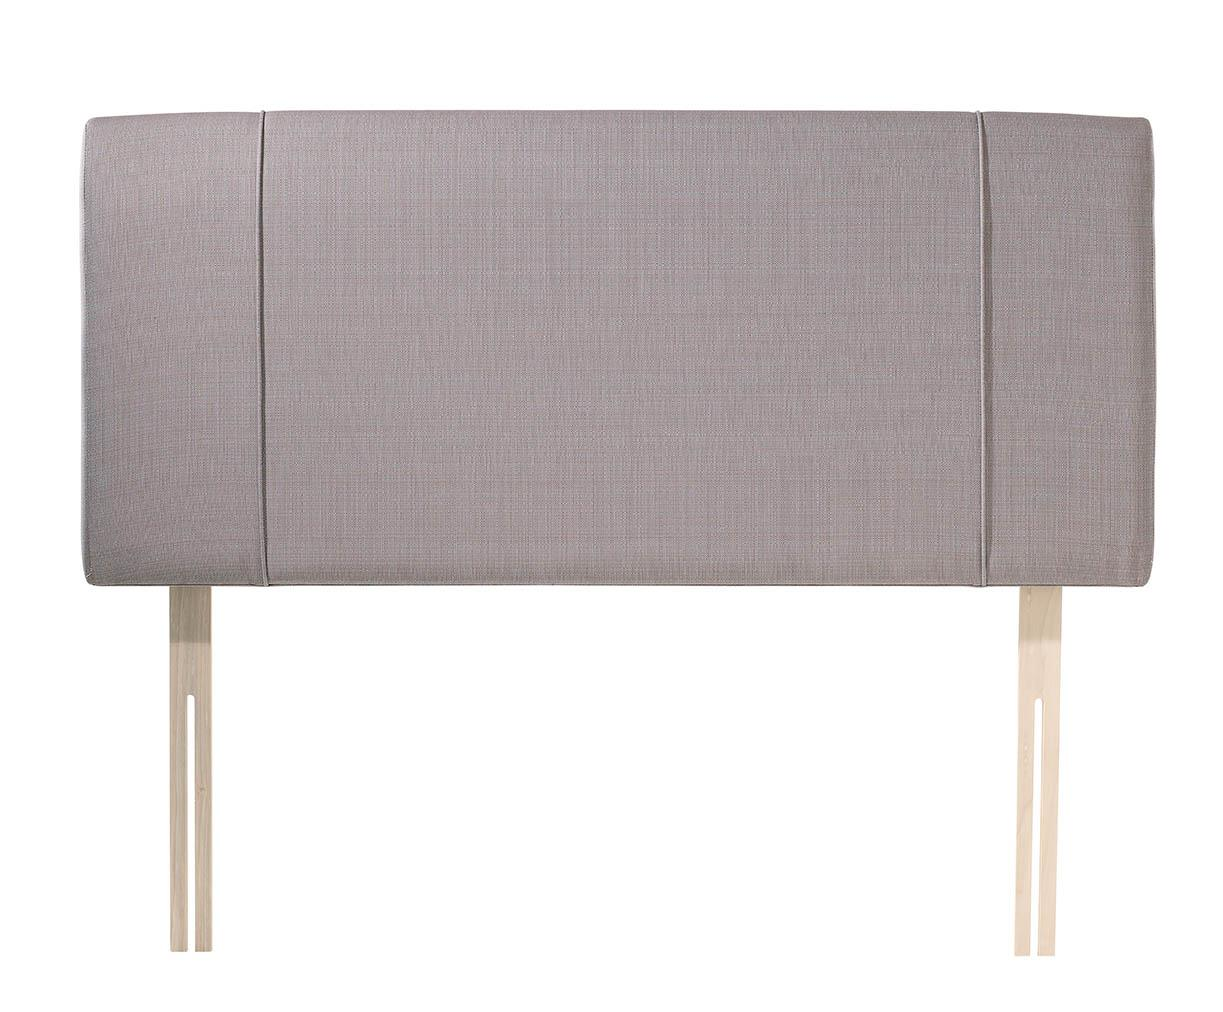 DECO - Strut Headboard by Harrison